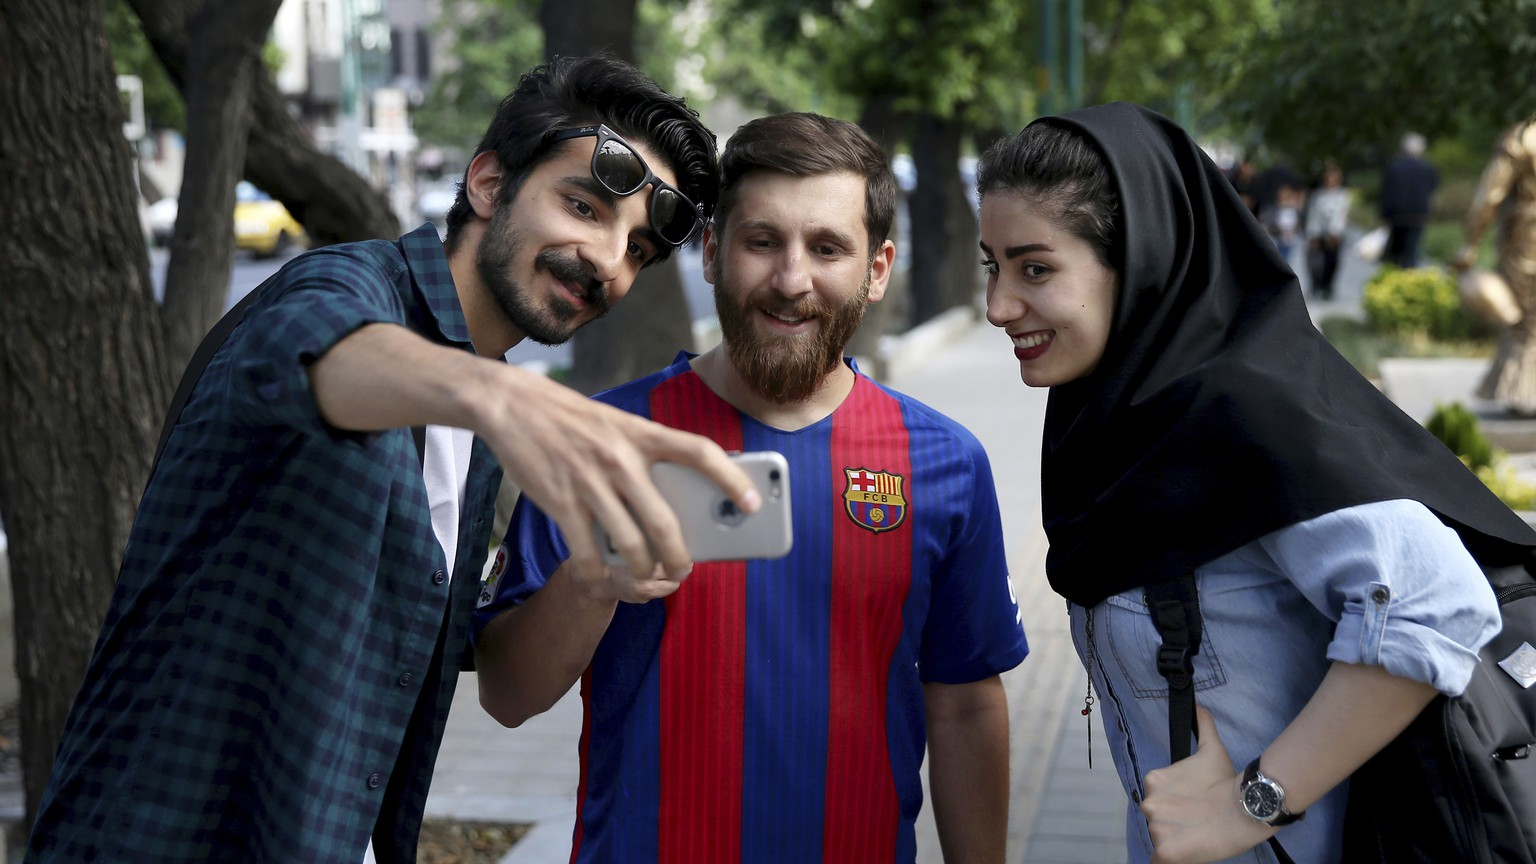 In this Monday, May 8, 2017 photo, two Iranians take a selfie with Reza Parastesh, Iranian doppelganger, or look-alike, of Lionel Messi, Argentinian soccer legend in Tehran, Iran. (AP Photo/Ebrahim Noroozi)